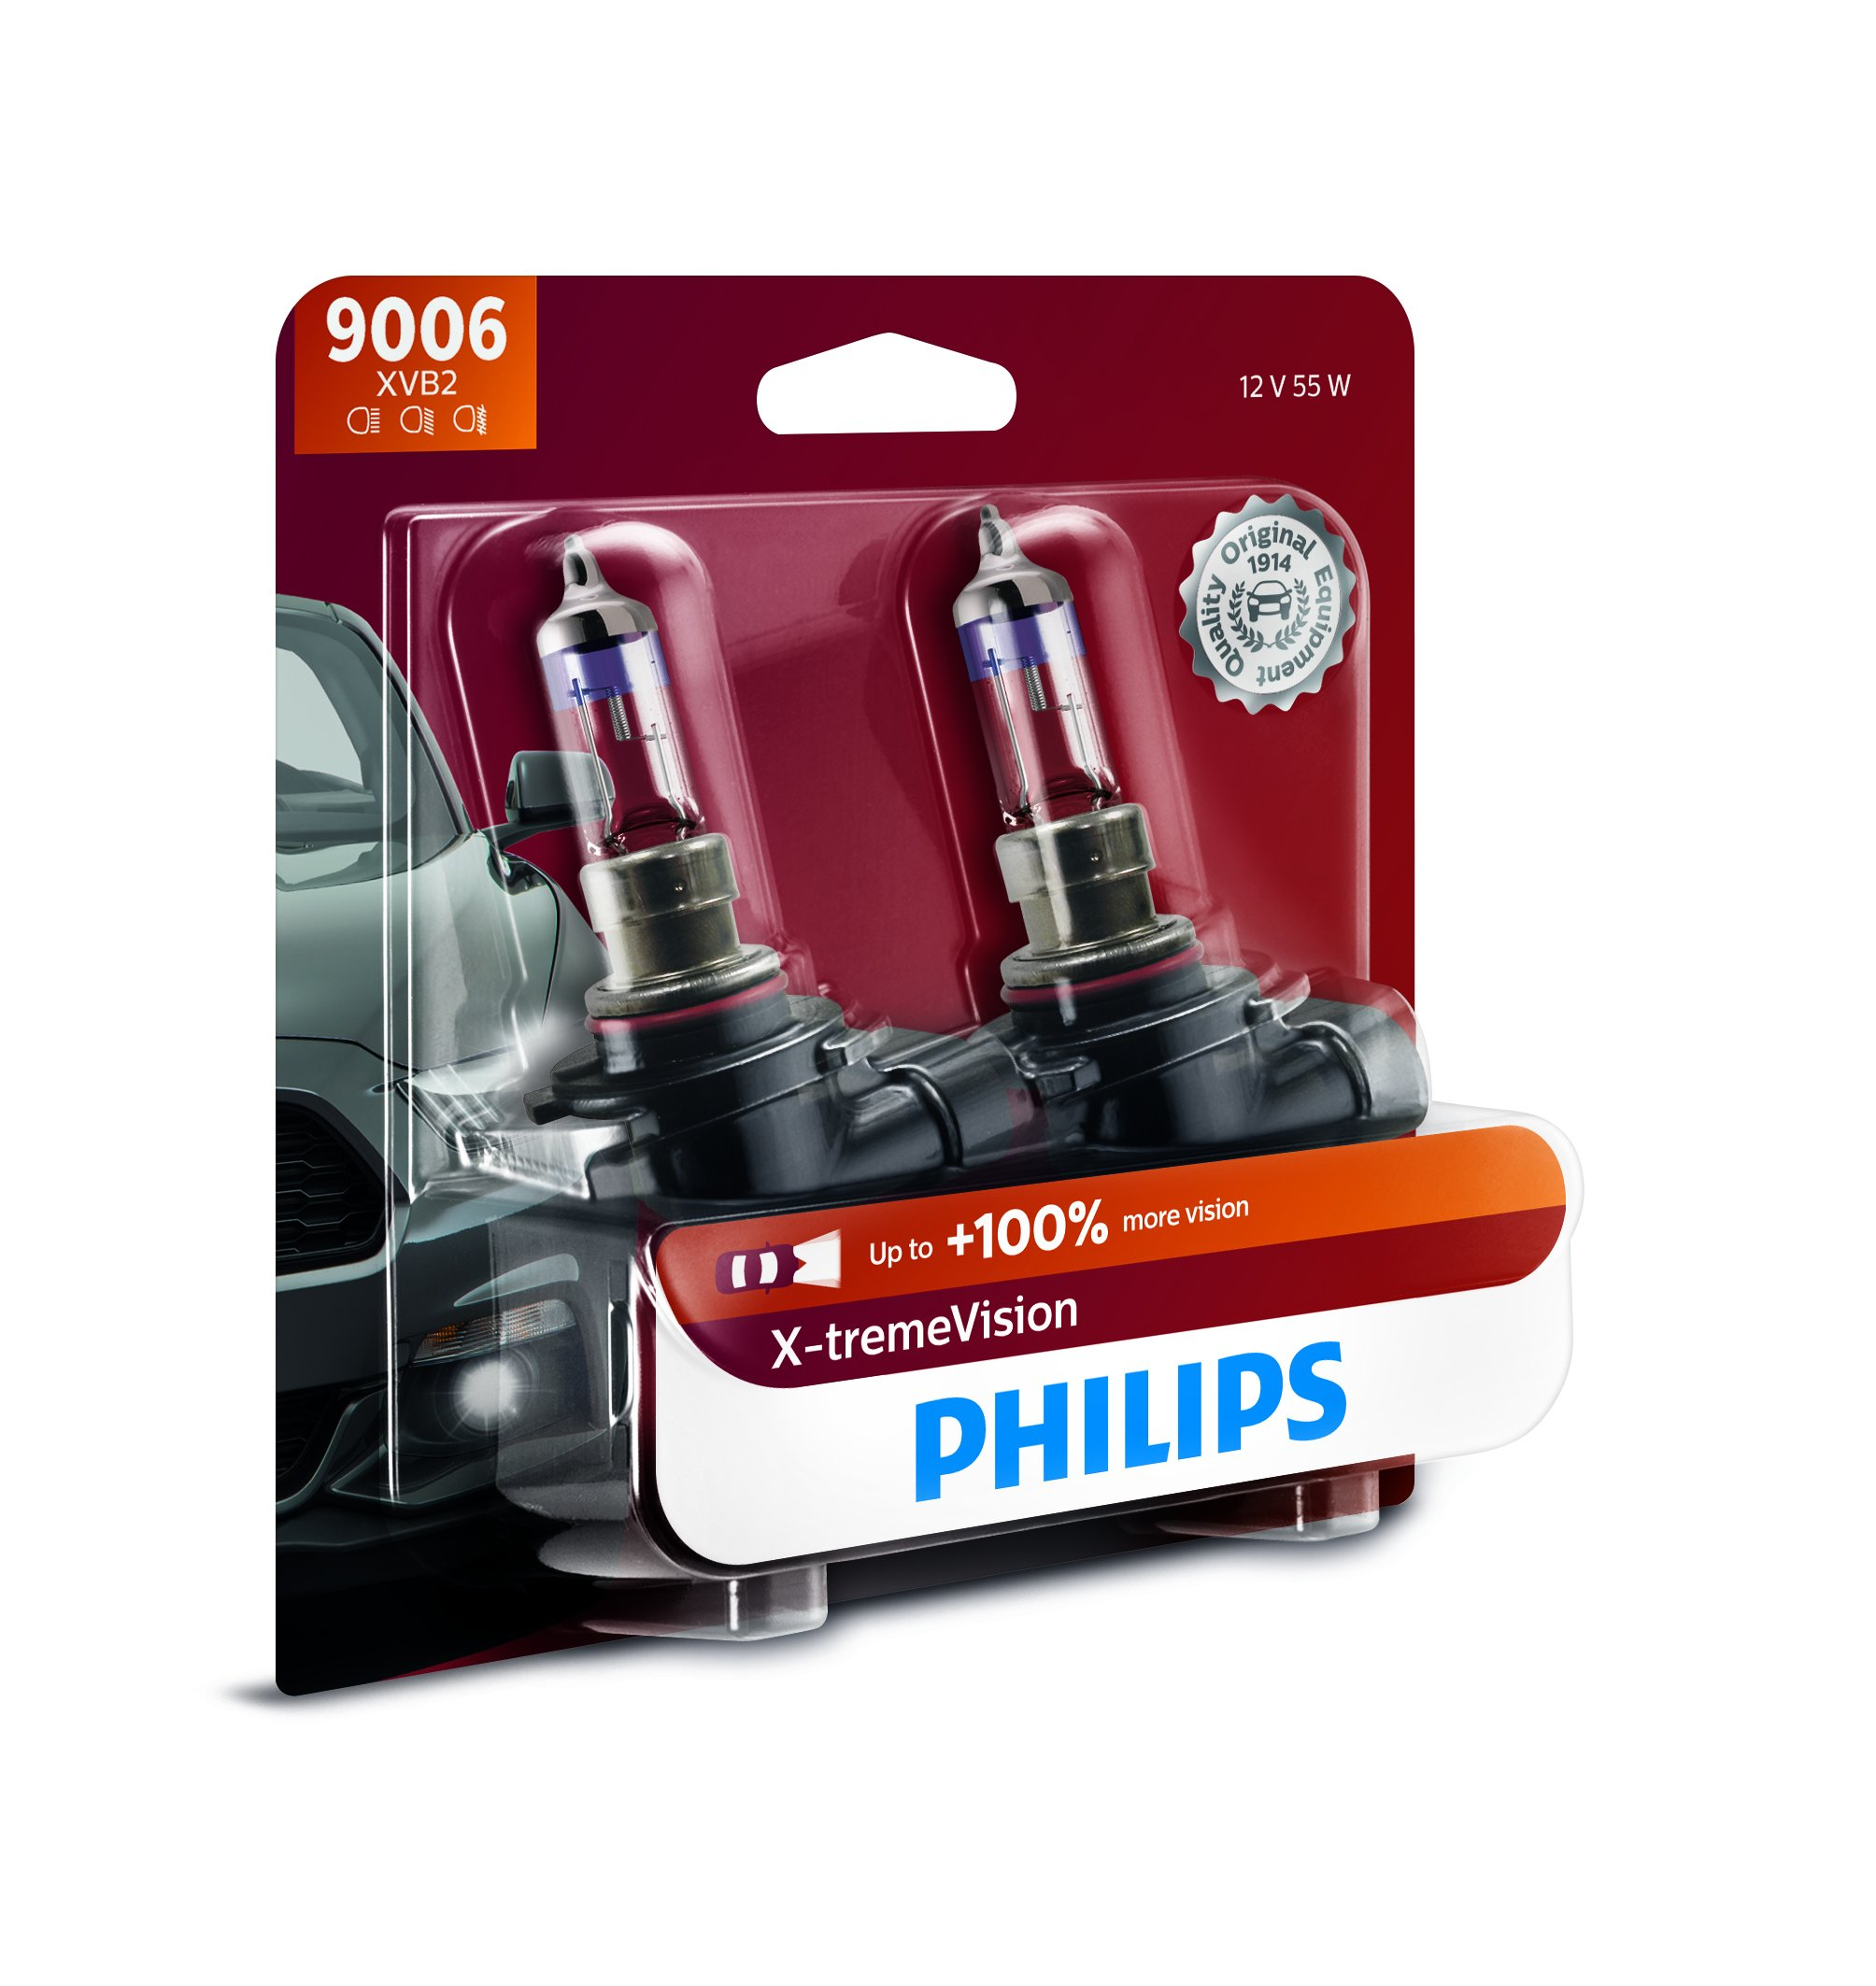 Philips 9006 X-tremeVision Upgrade Headlight Bulb with up to 100% More Vision, 2 Pack by PHILIPS